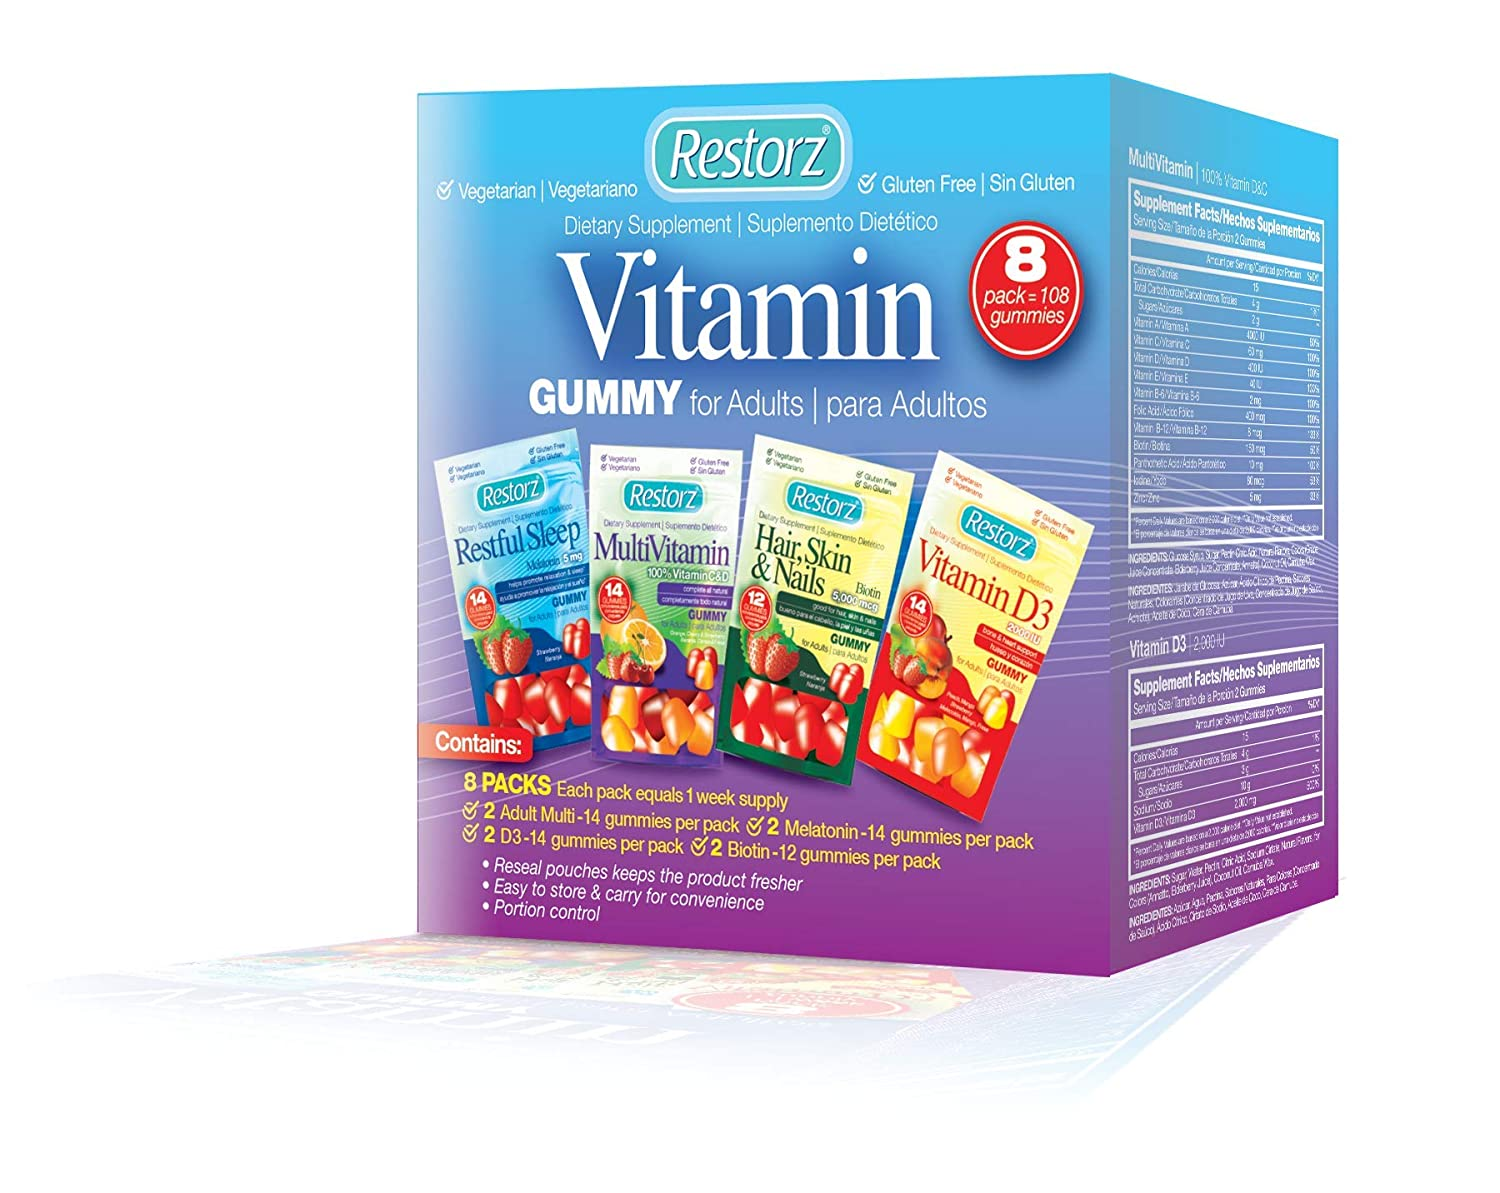 Amazon.com: Restorz Multivitamin, Vitamin D3, Hair, Skin & Nails and Restful Sleep Gummy for Adults Multi Pack - 108 Gummies, 8 Pack: Health & Personal Care